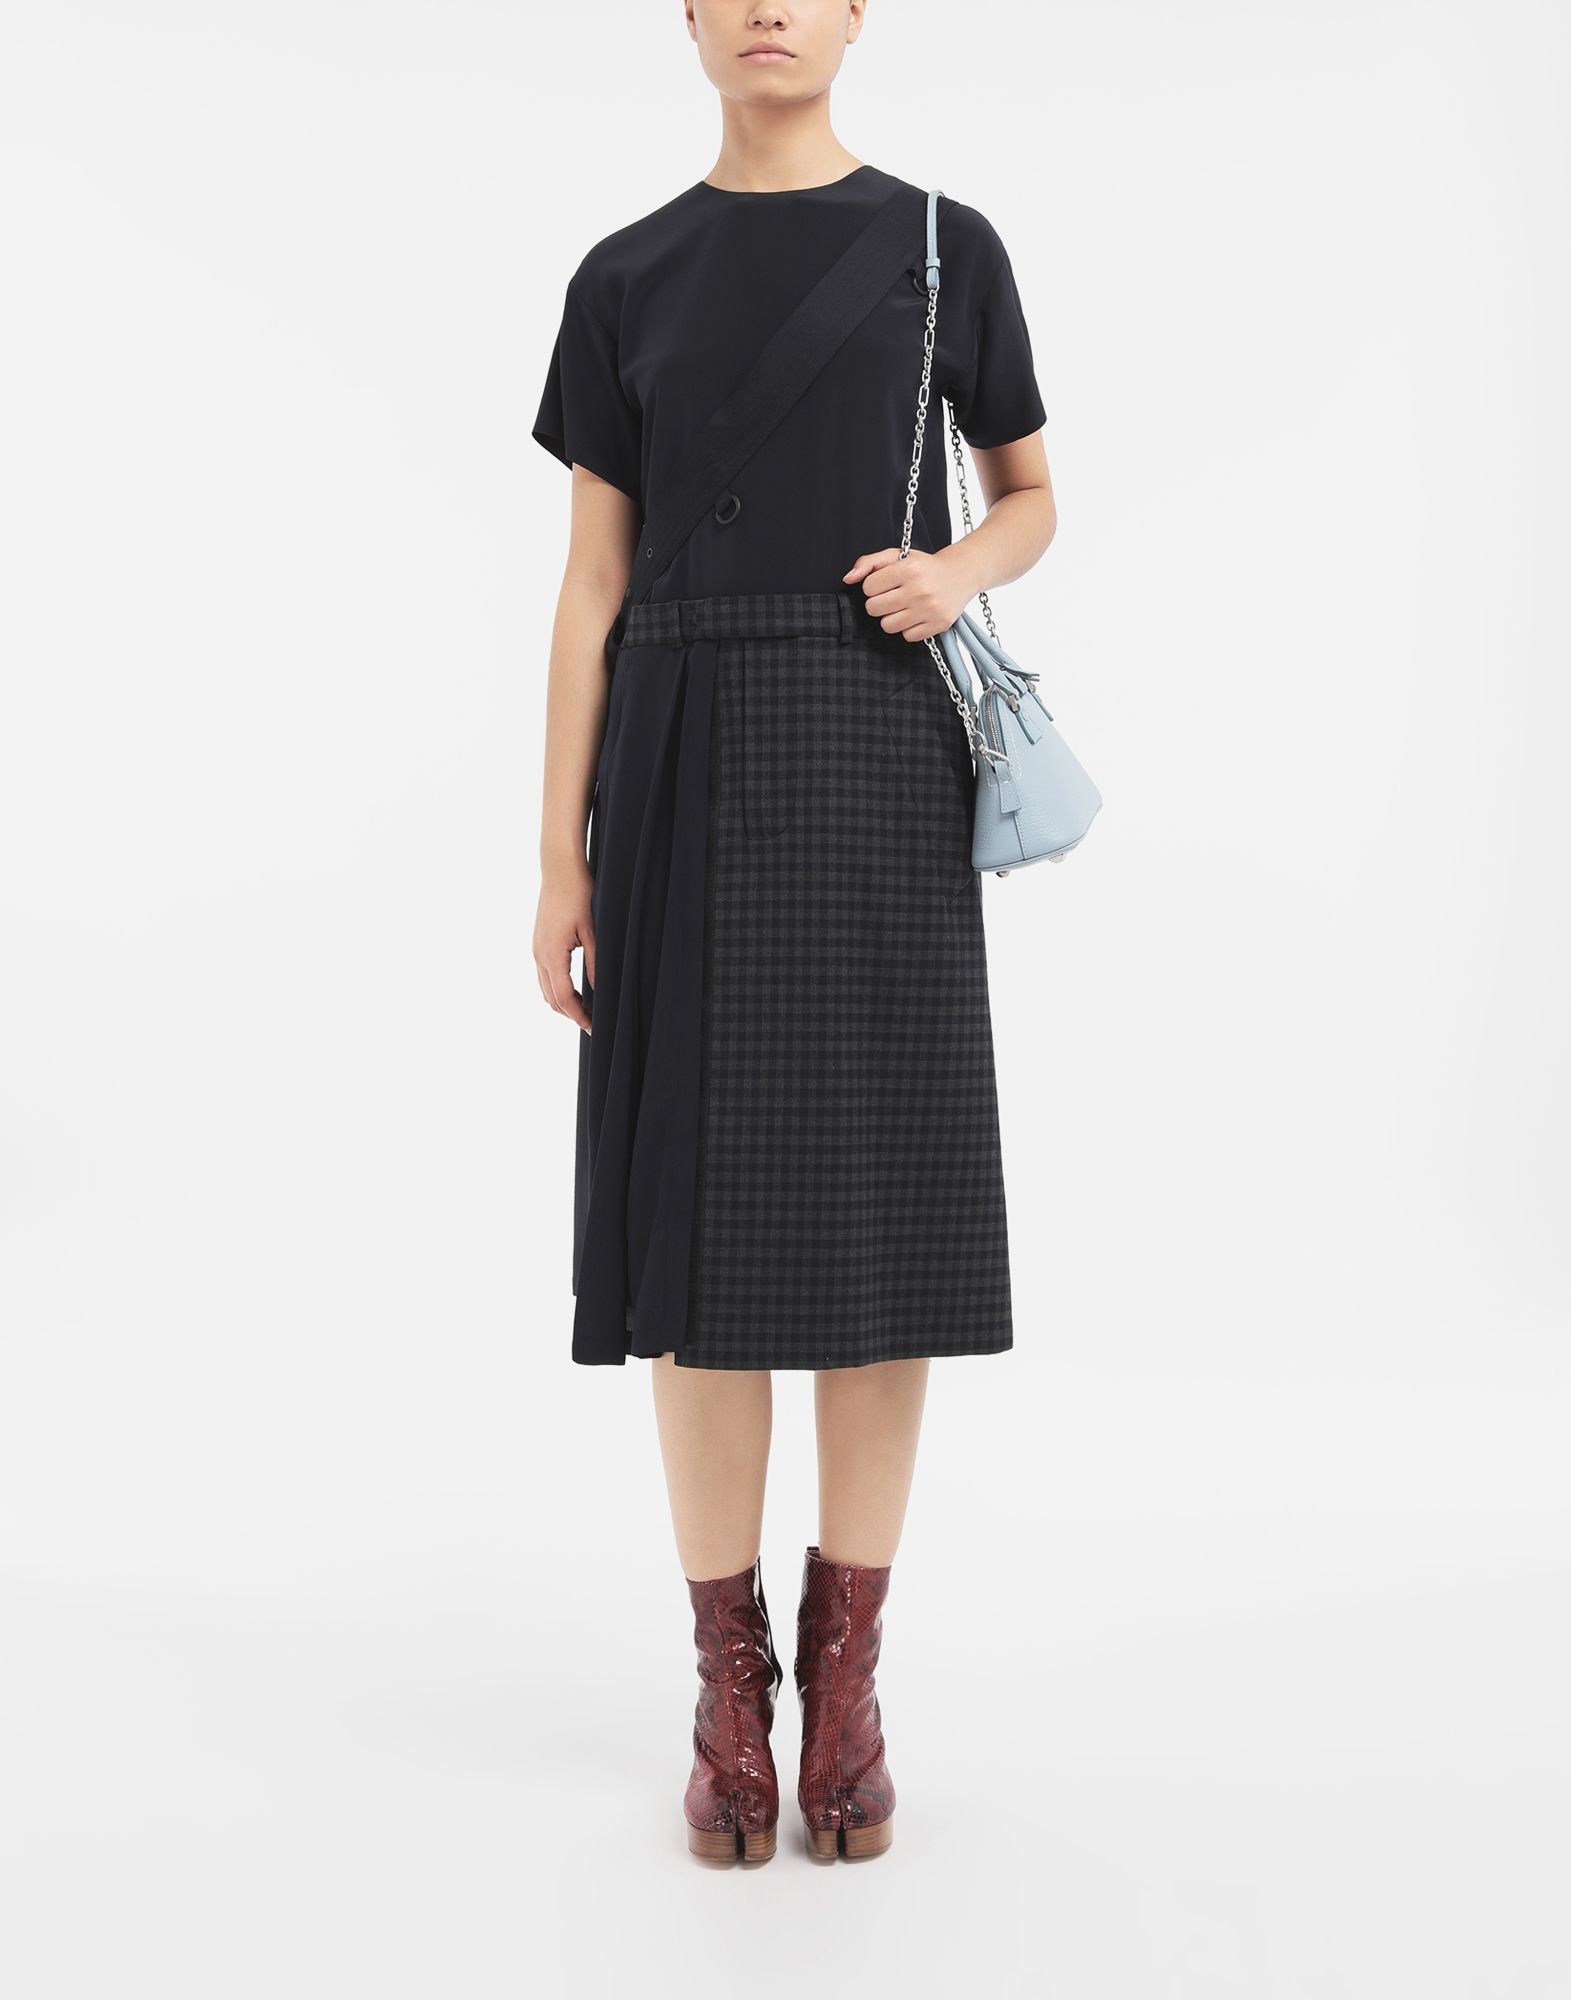 MAISON MARGIELA Reworked check dress Dress Woman d